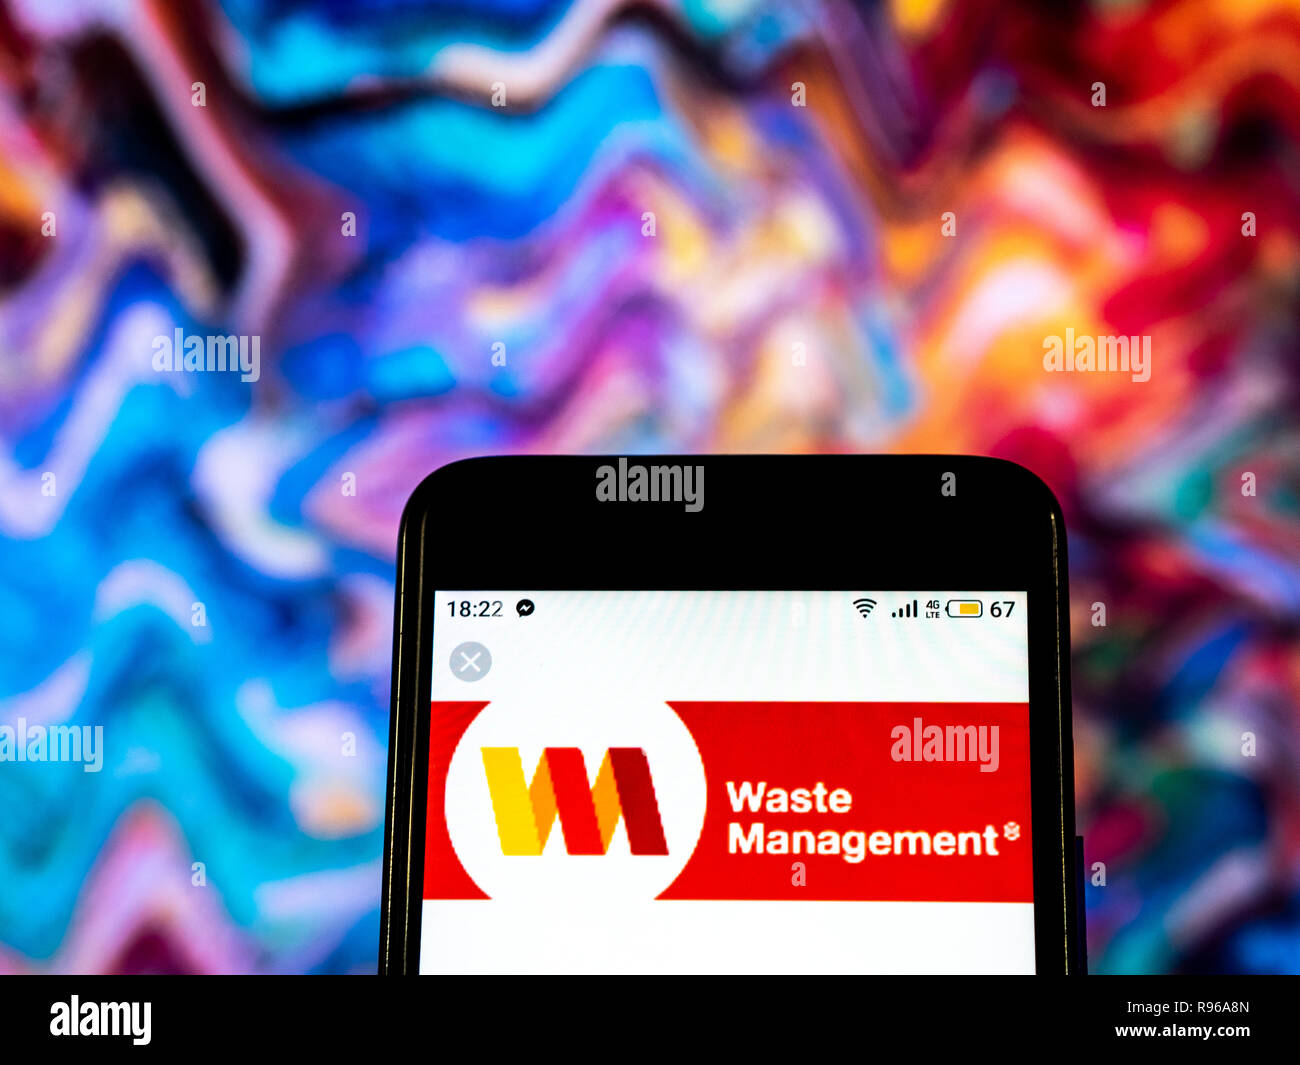 Waste management company logo seen displayed on smart phone Stock